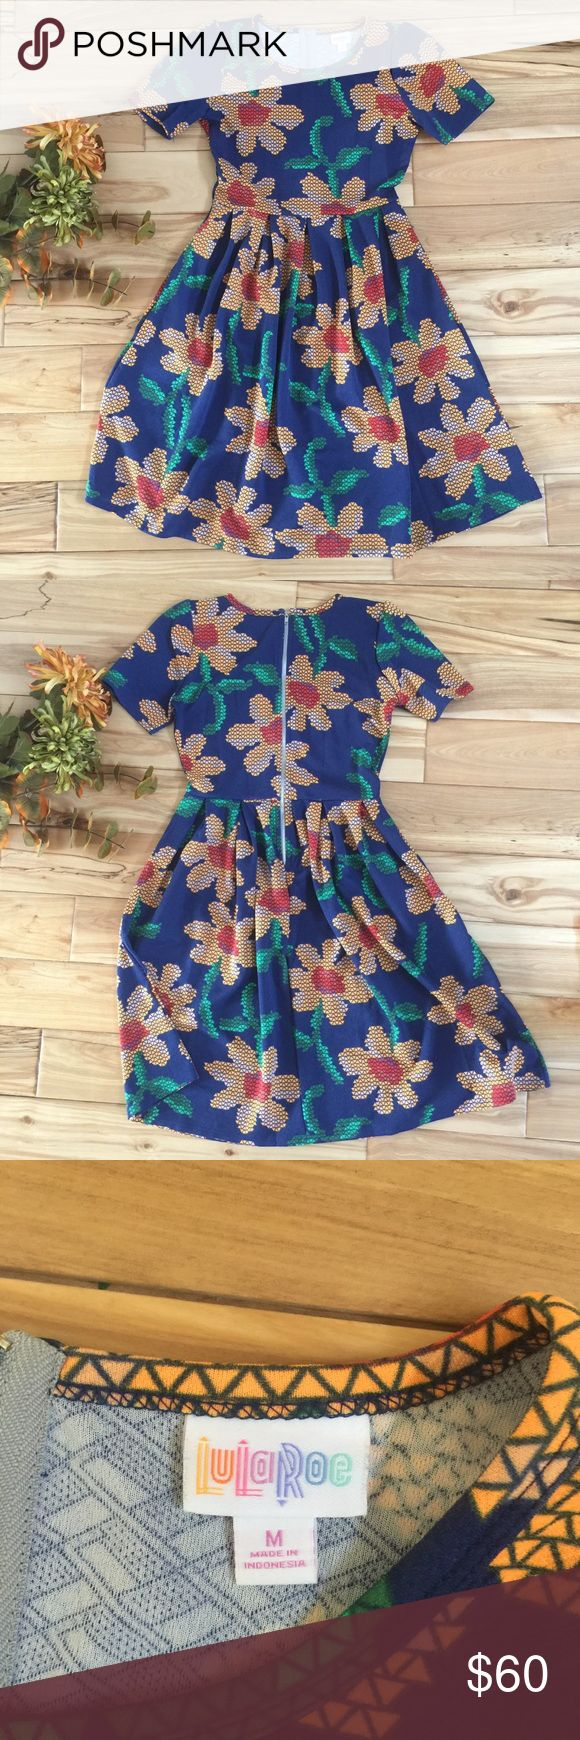 LuLaRoe Amelia Dress - Geometric Flowers - M Worn once for Easter, otherwise new condition. Gorgeous pattern- Just doesn't fit anymore! LuLaRoe Dresses